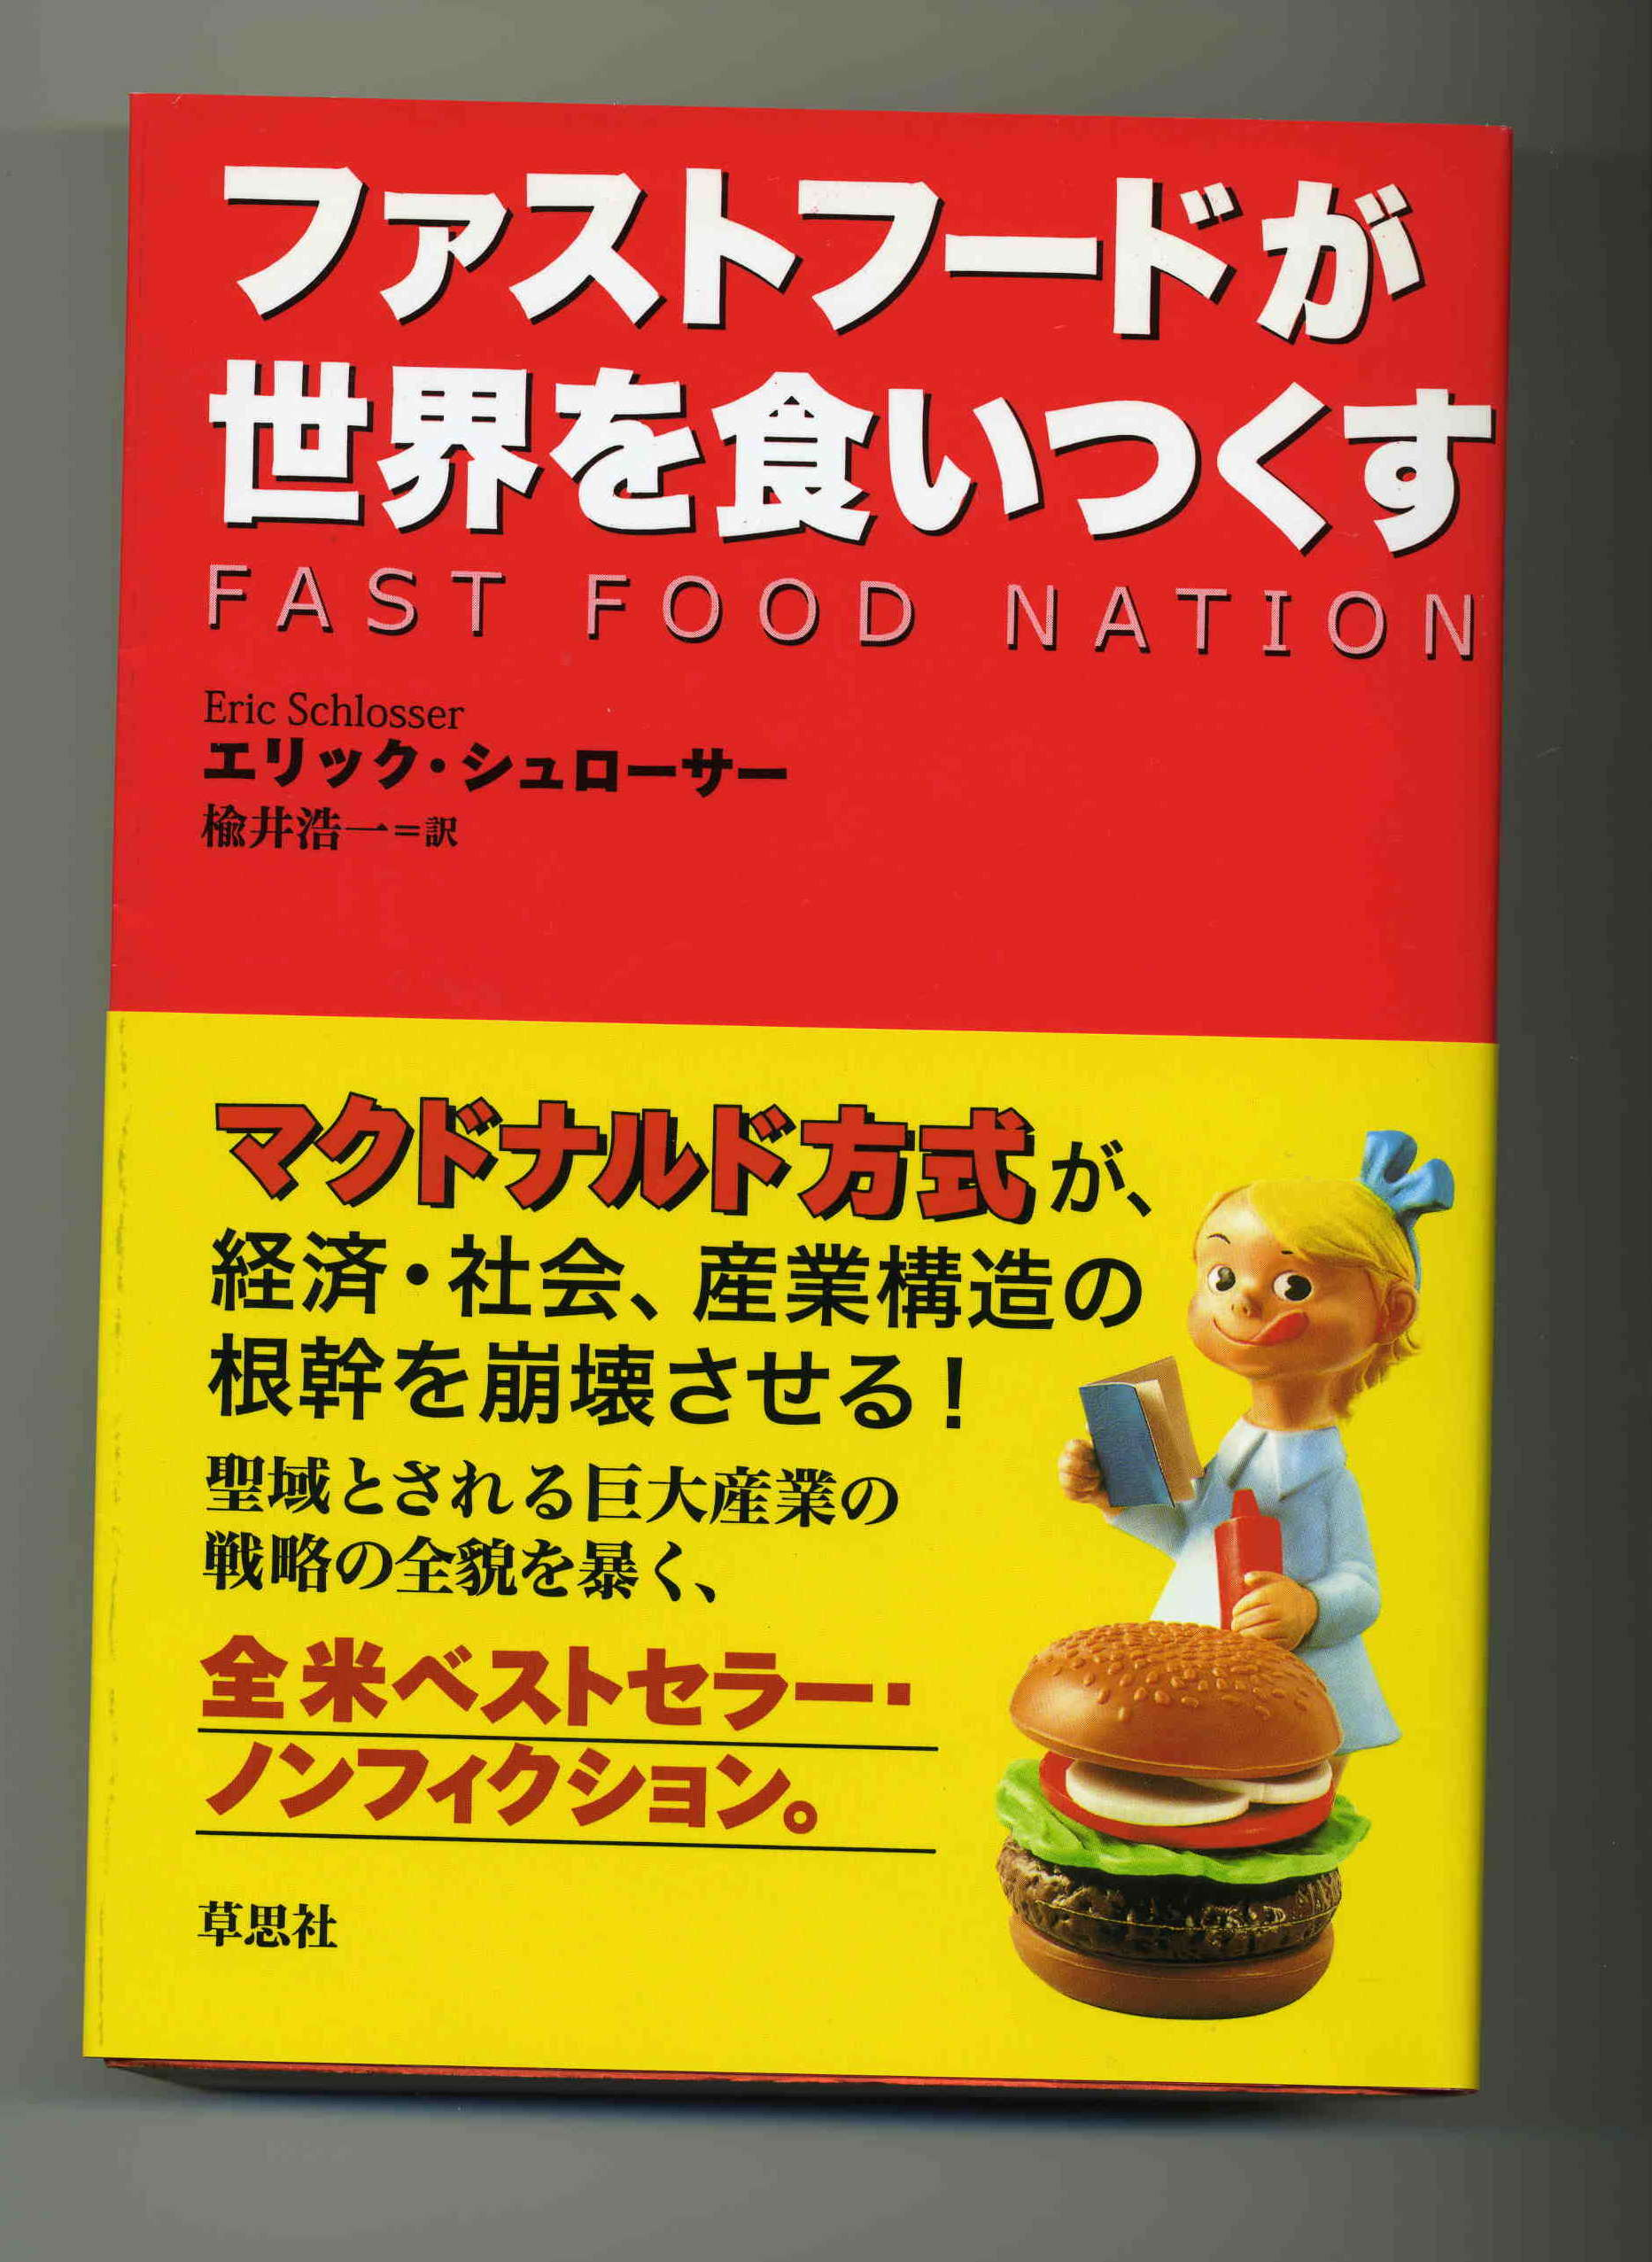 Fast Food Nation - blogger.com